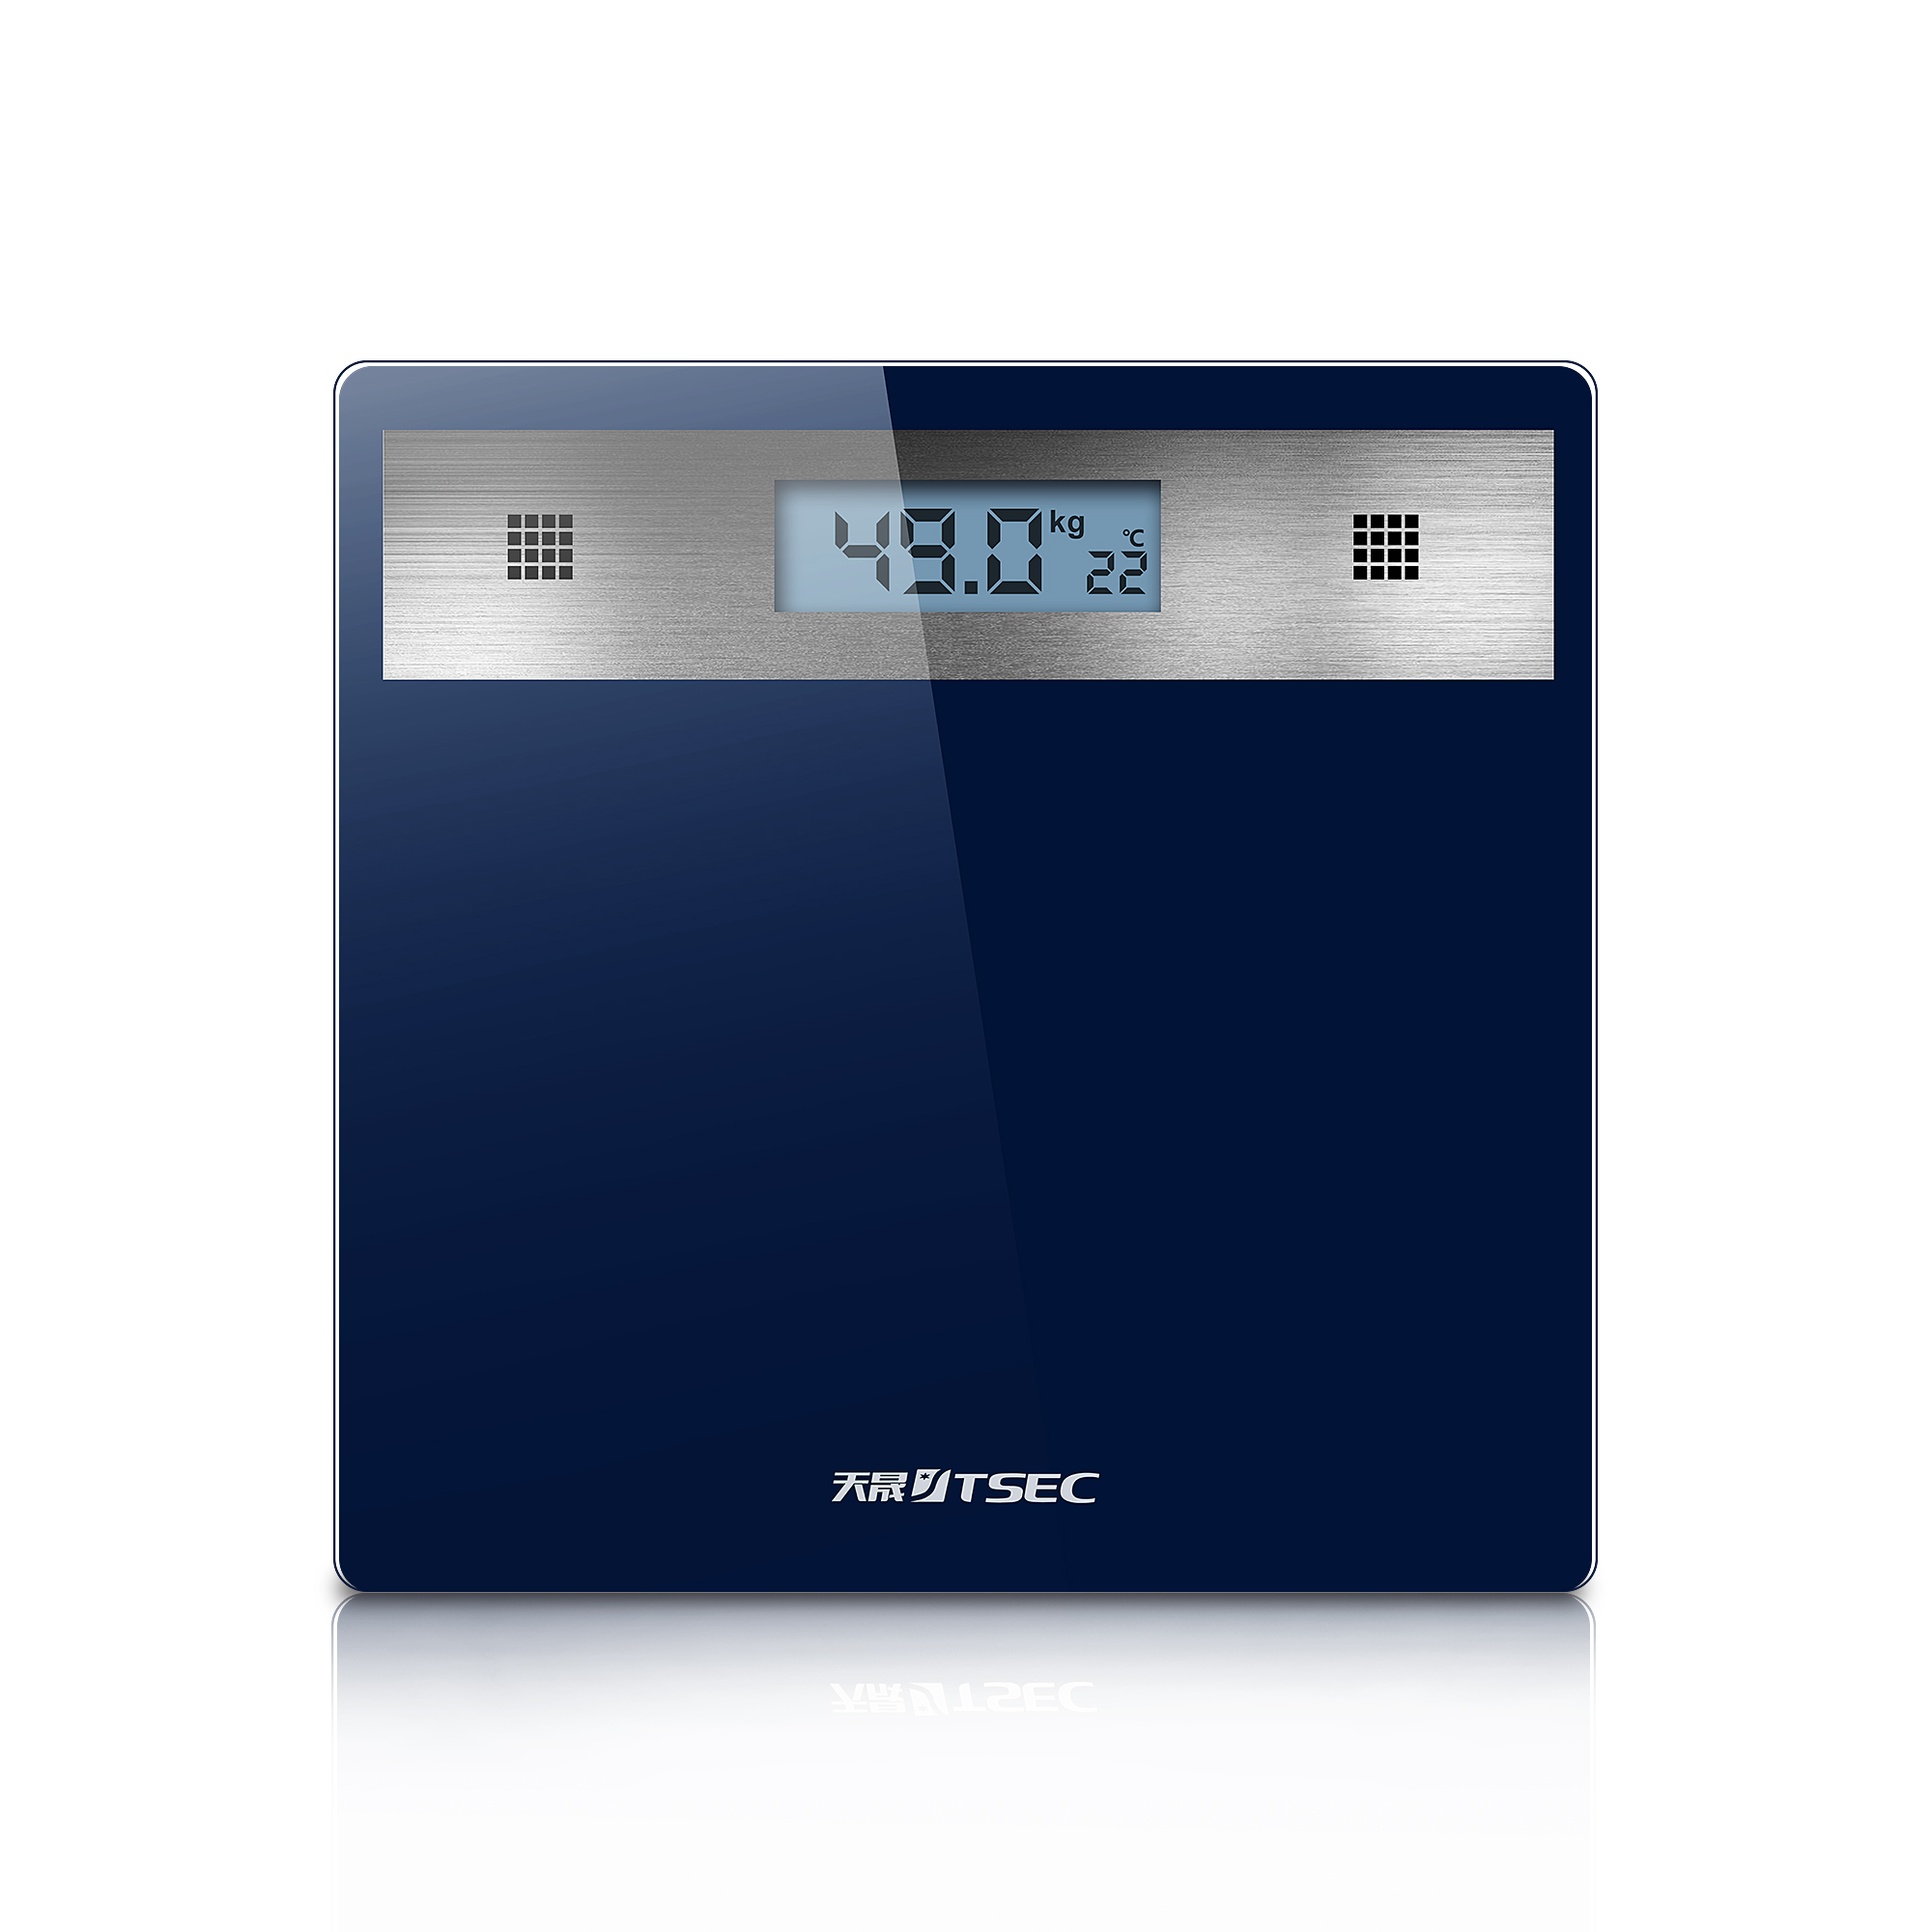 Tiansheng trend 2020 hot selling balance Digital Electronics High Quality Voice Body Household Weighing scales talking scale